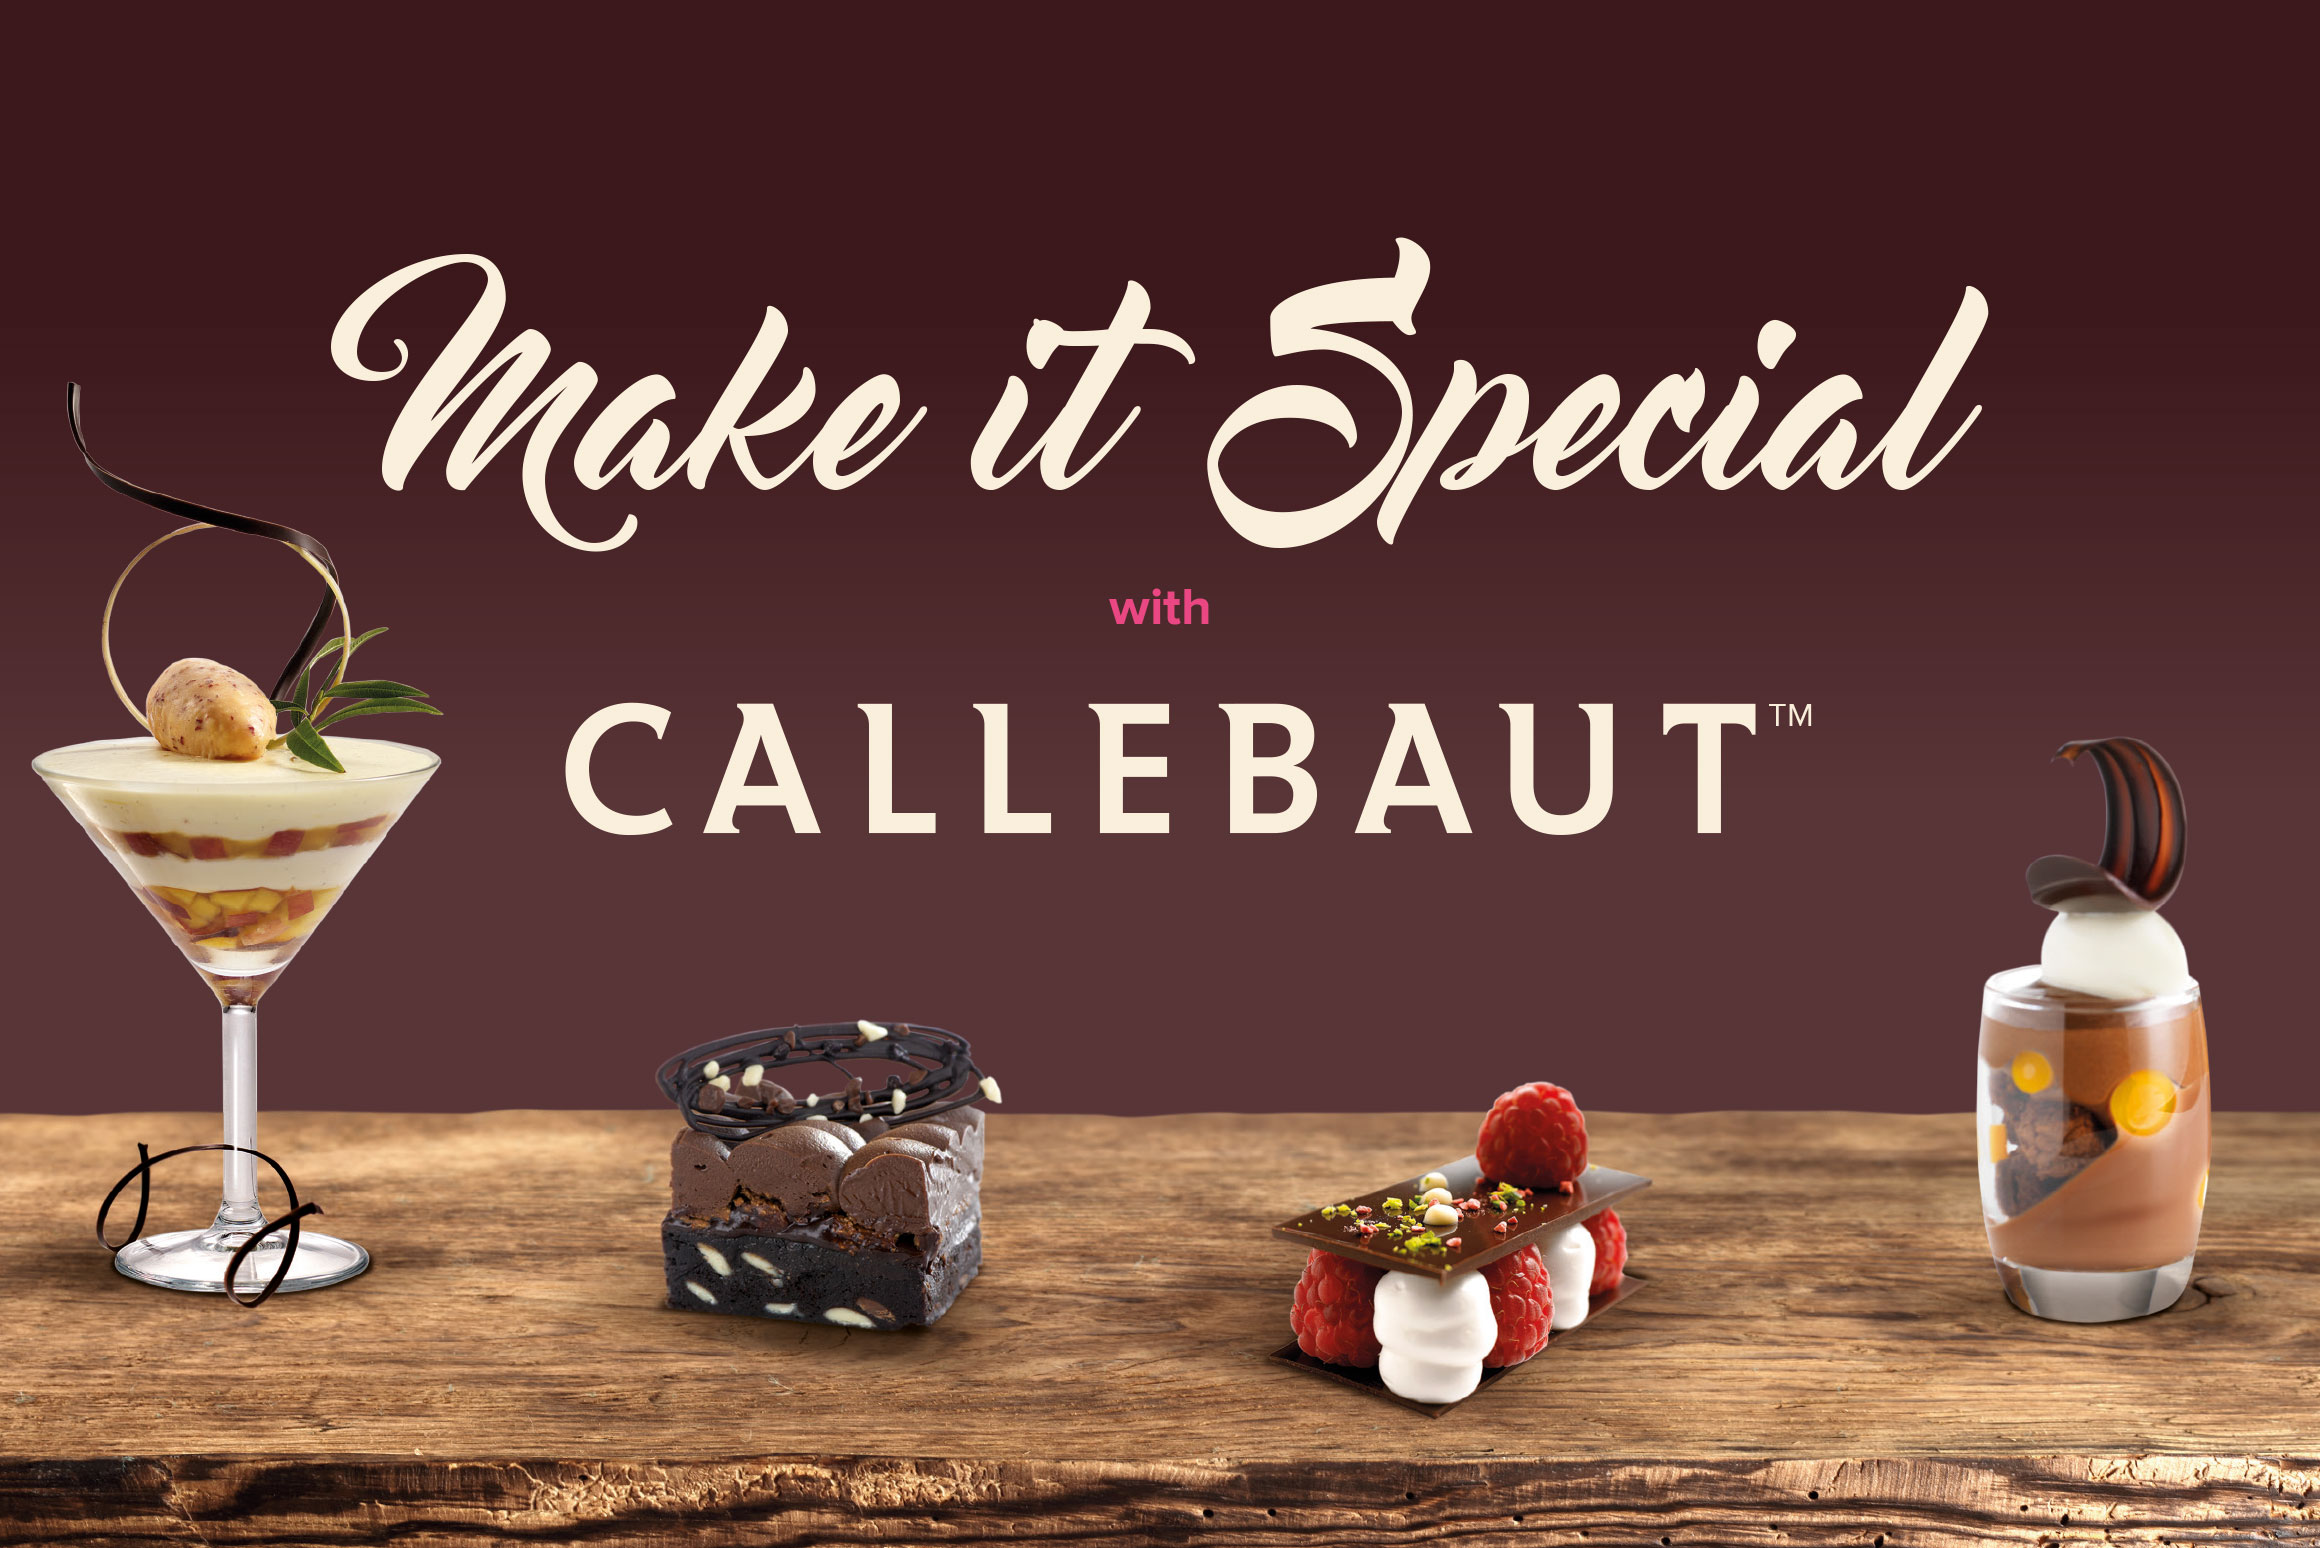 Foodservice Marketing - Callebaut Make it Special